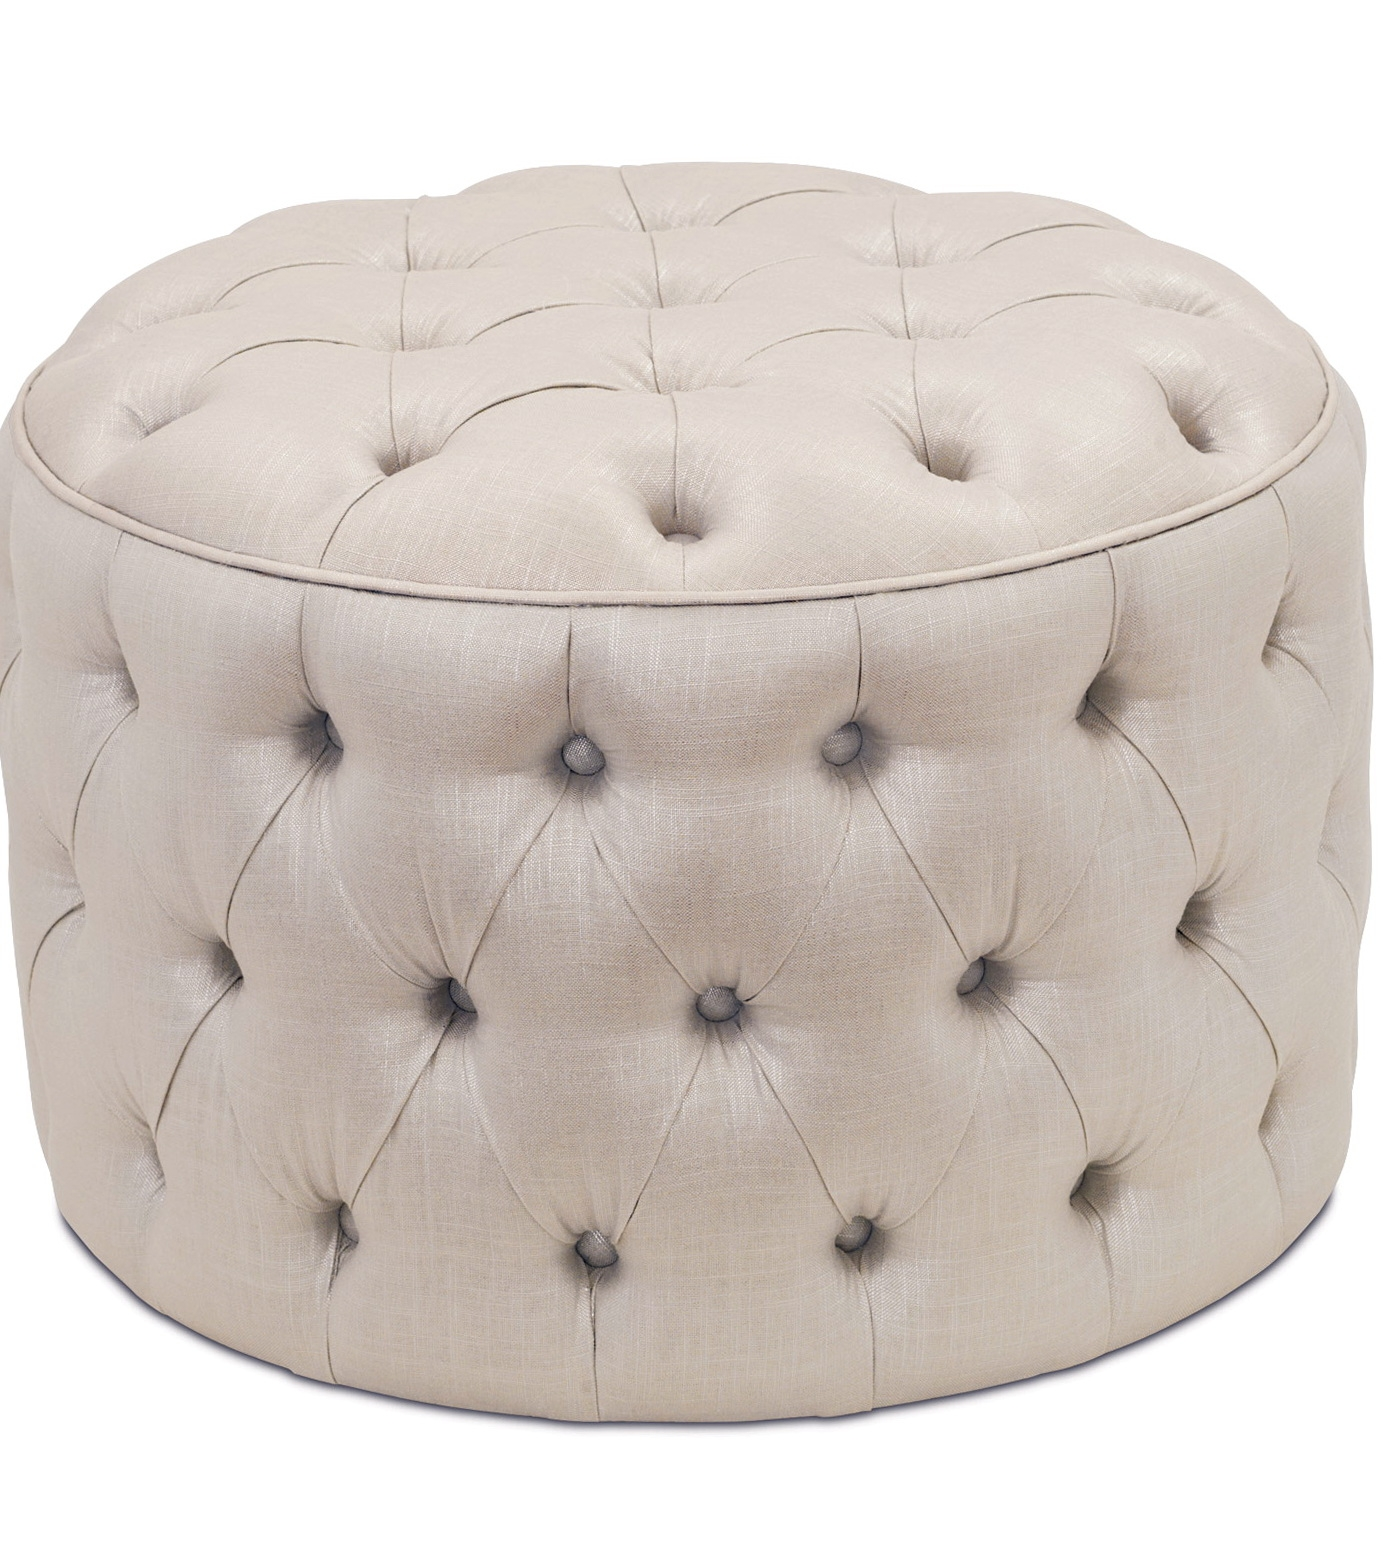 Furniture Luxury Round Tufted Ottoman For Home Furniture Ideas Intended For Small Footstools And Pouffes (View 15 of 15)